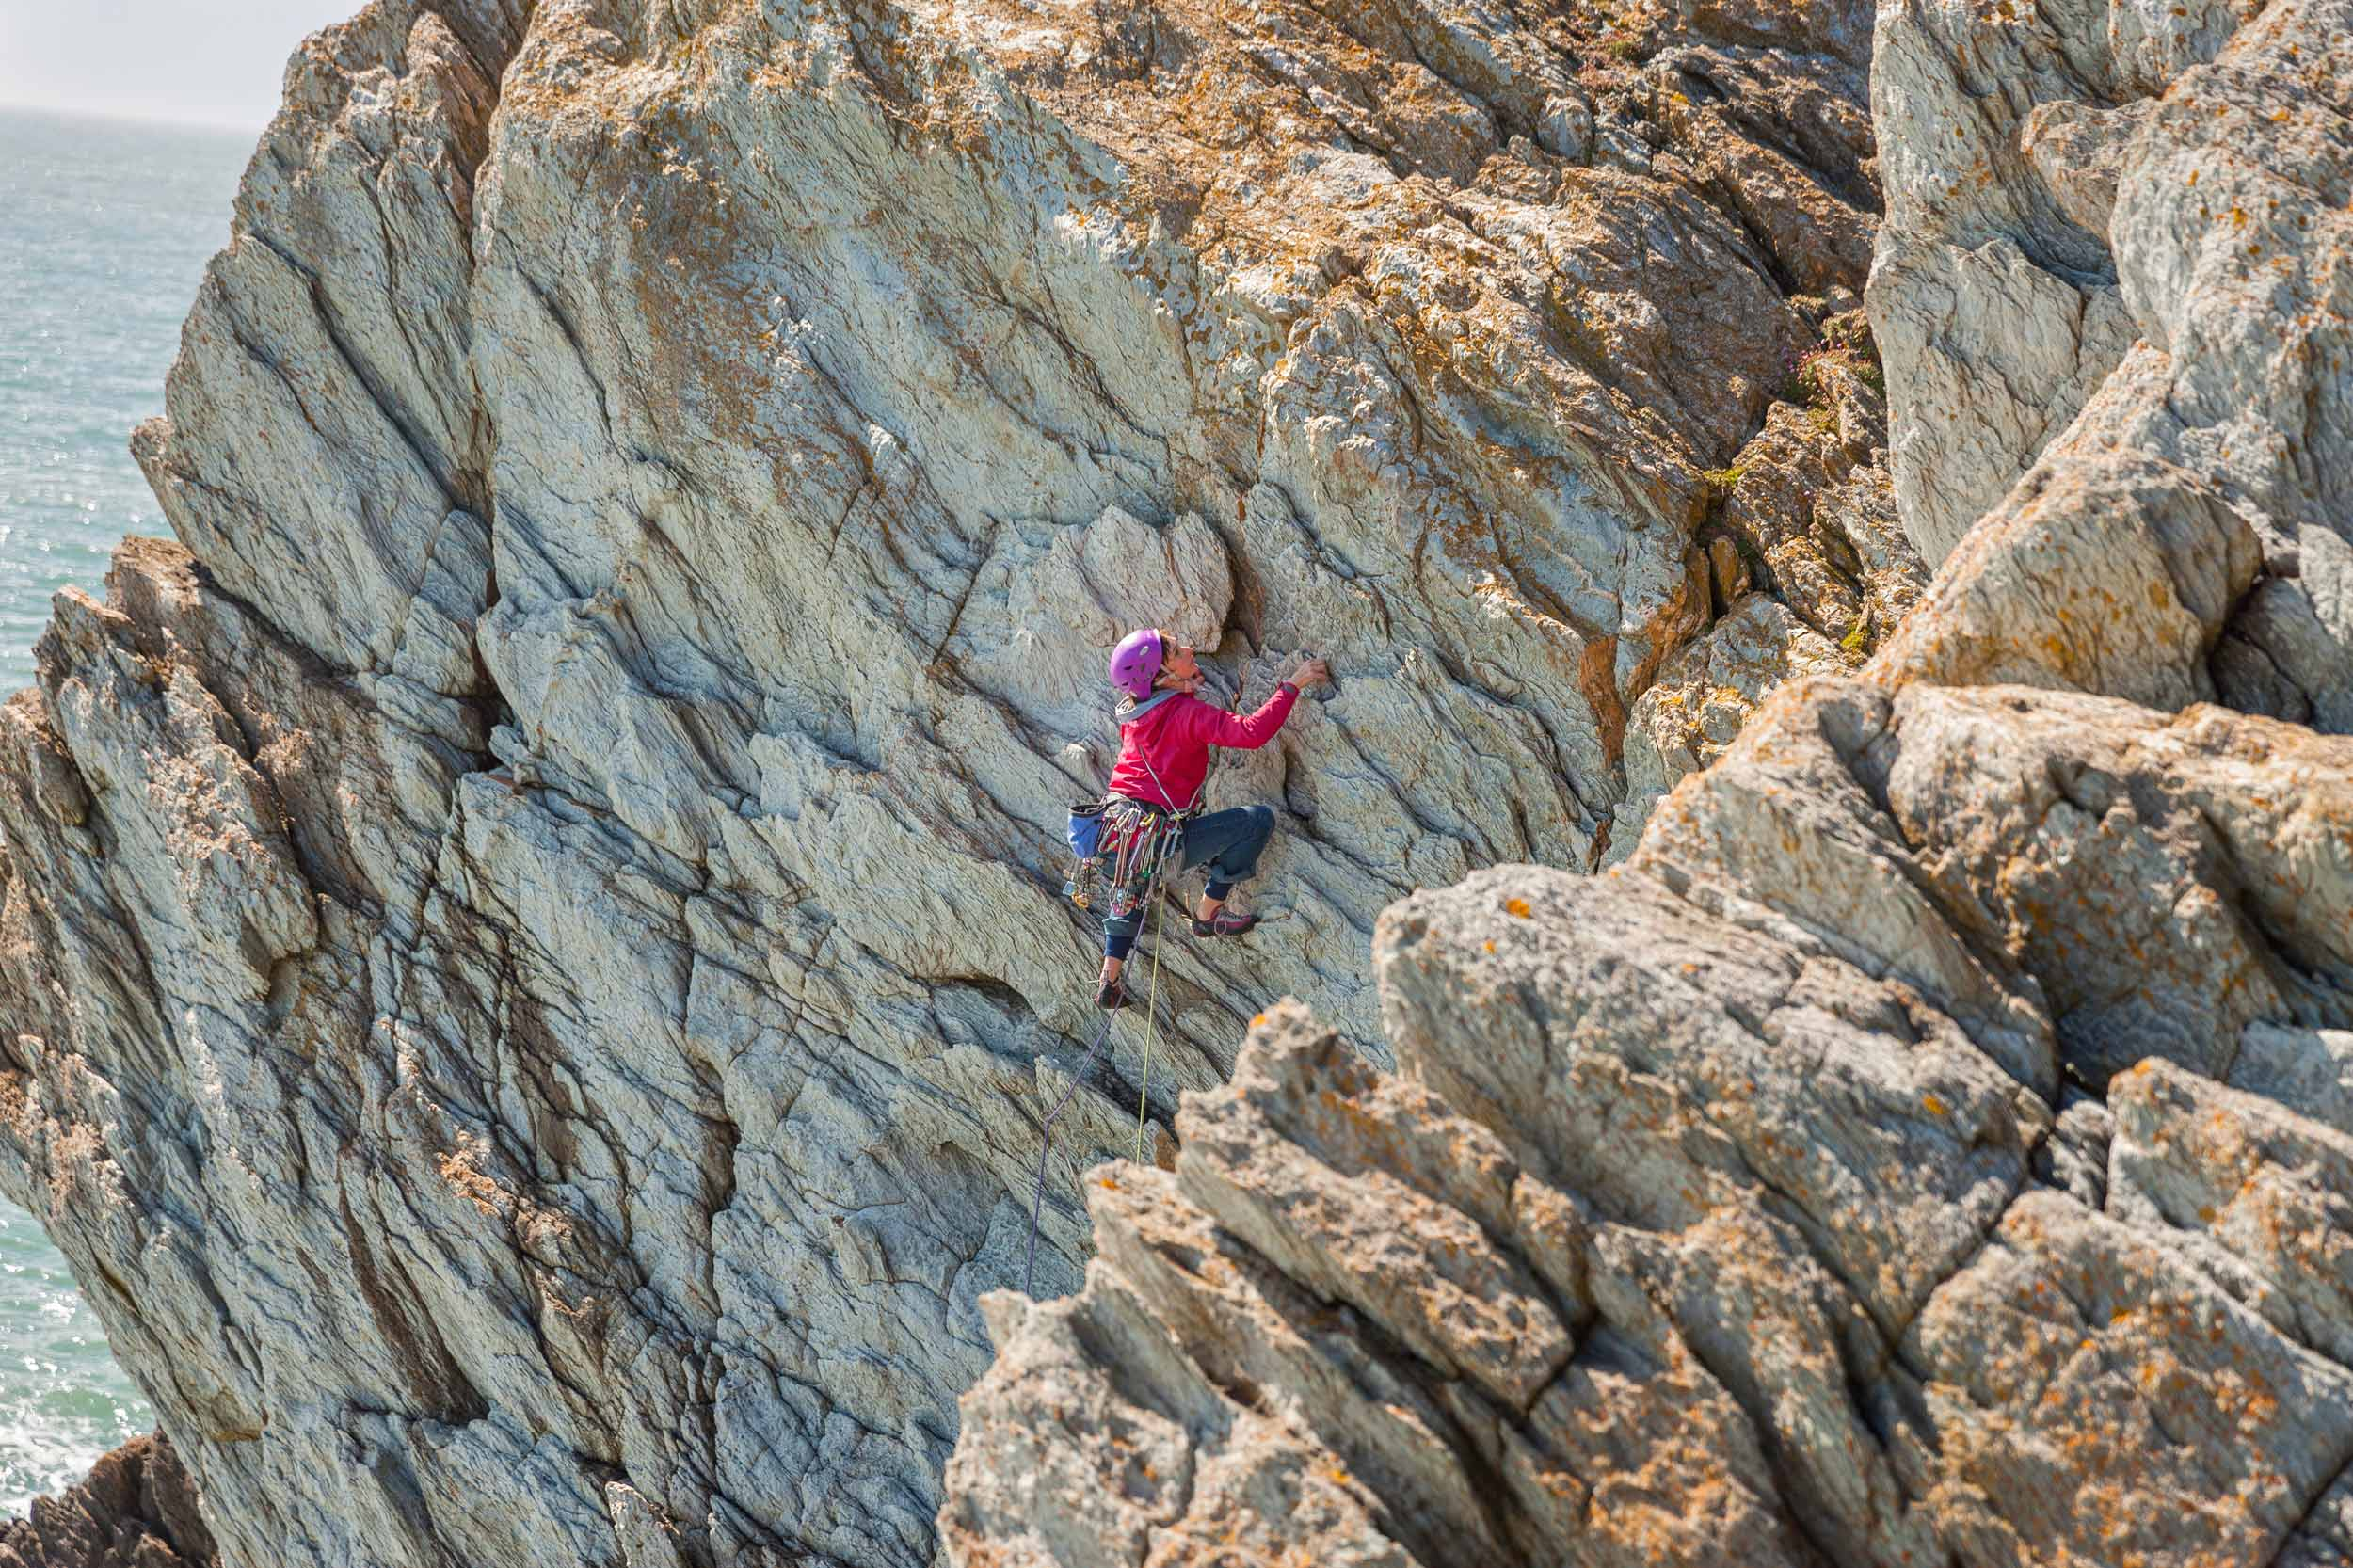 Climbing at Rhoscolyn, Holy Island, Anglesey  (Crown copyright 2018 / Visit Wales)